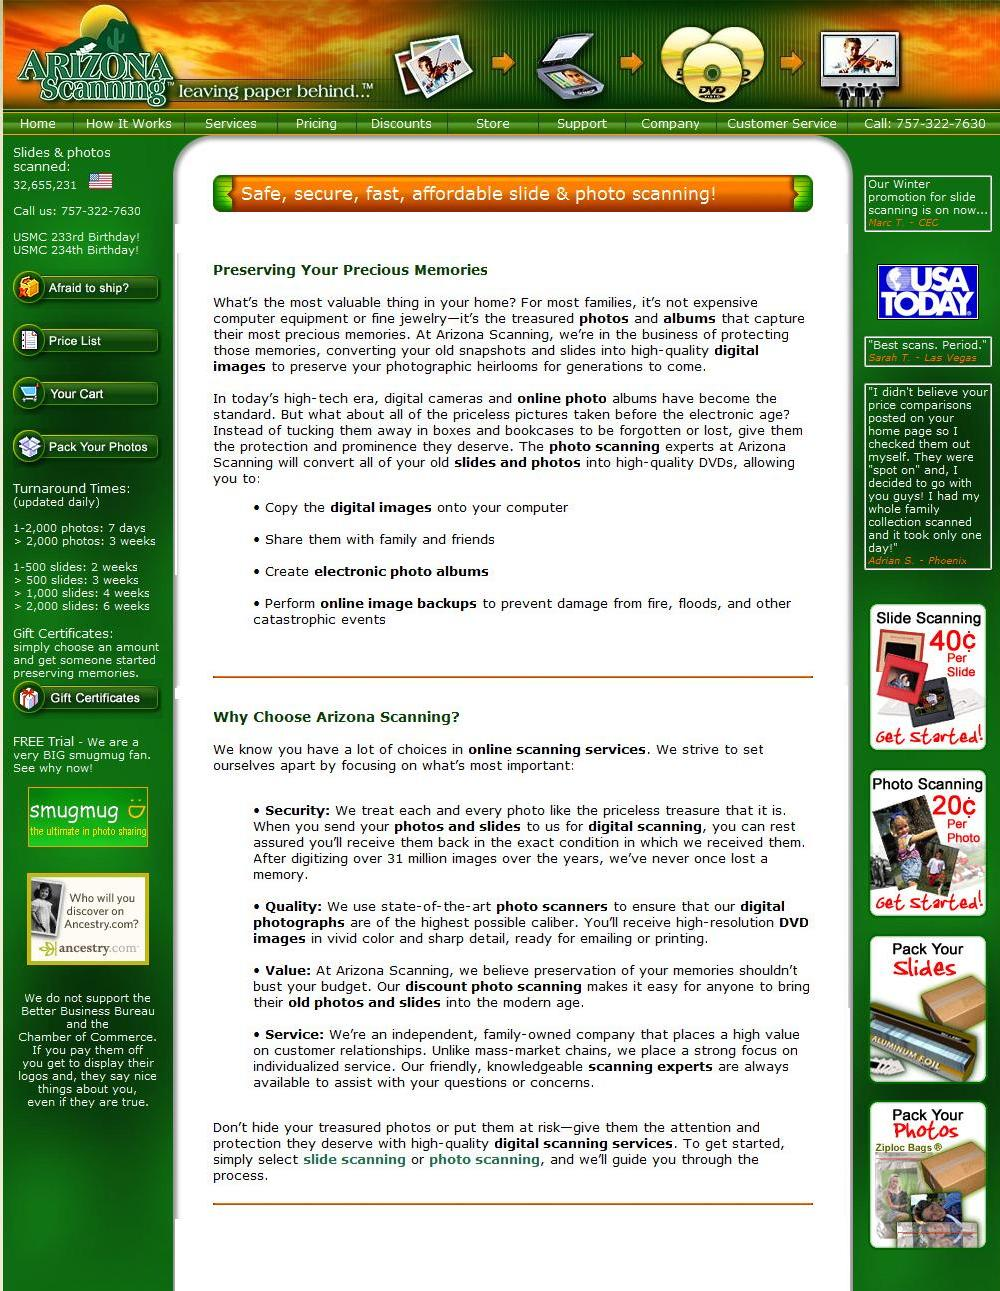 Home Page Copy: Arizona Scanning